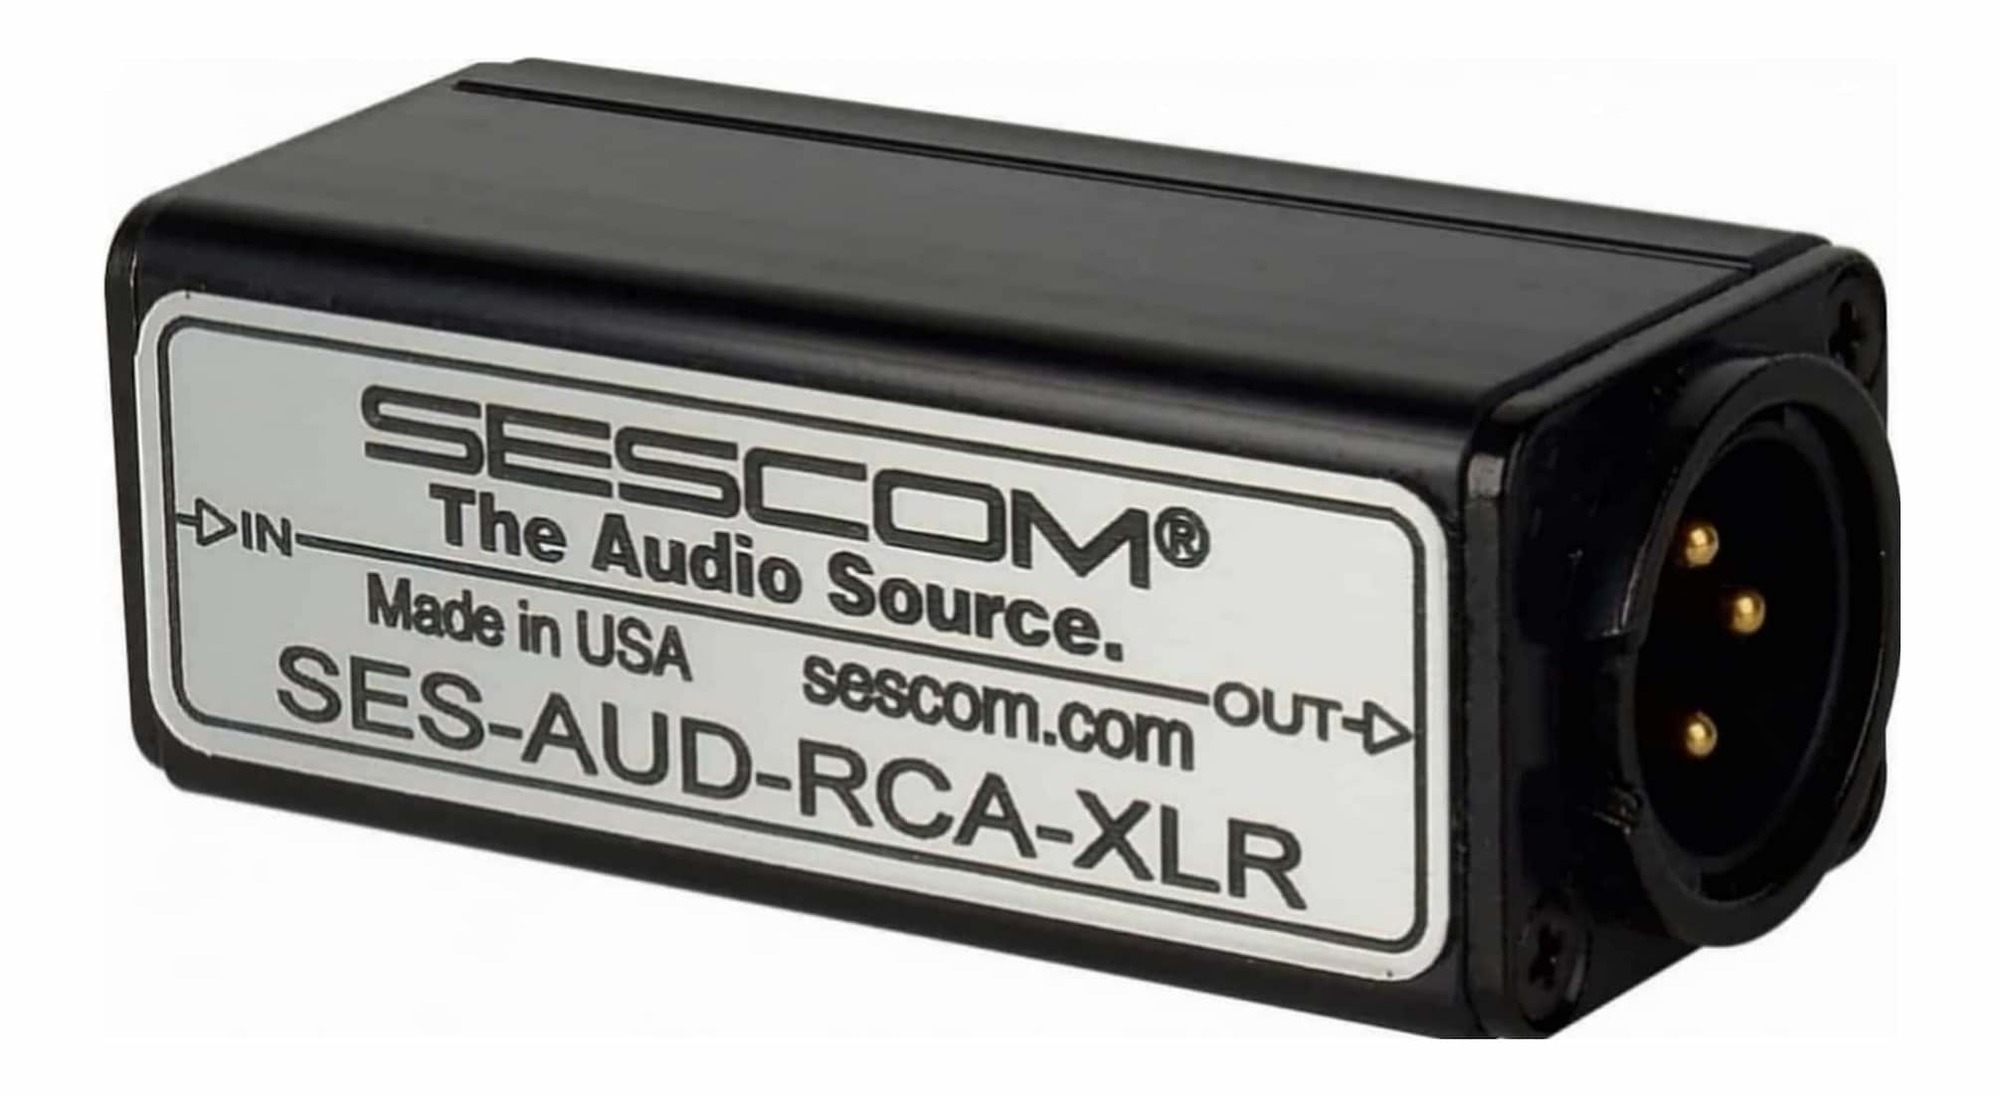 Sescom Aud Rca Xlr 1 Channel To Unbalanced Balanced Audio Wiring